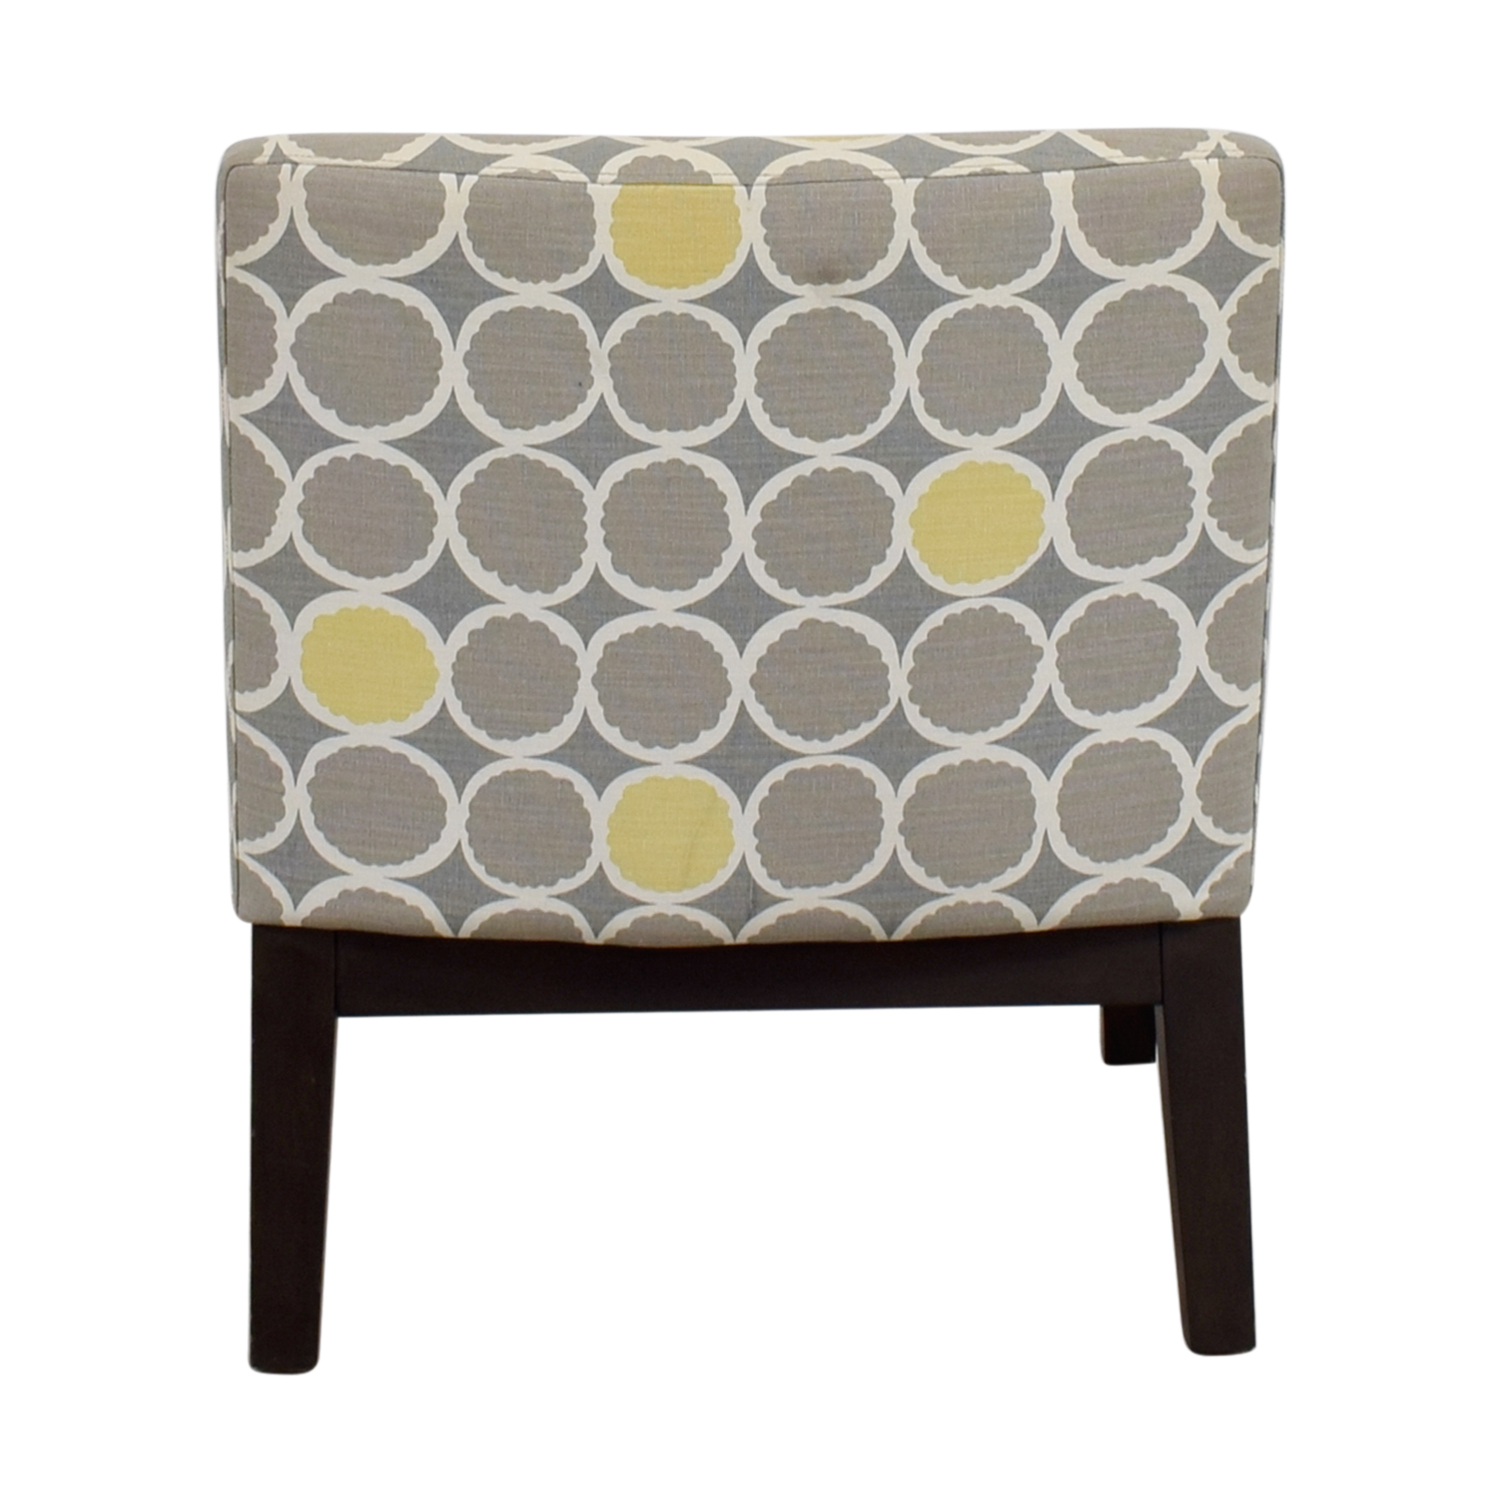 White Accent Chairs Used.72 Off West Elm West Elm Grey Yellow And White Accent Chair Chairs